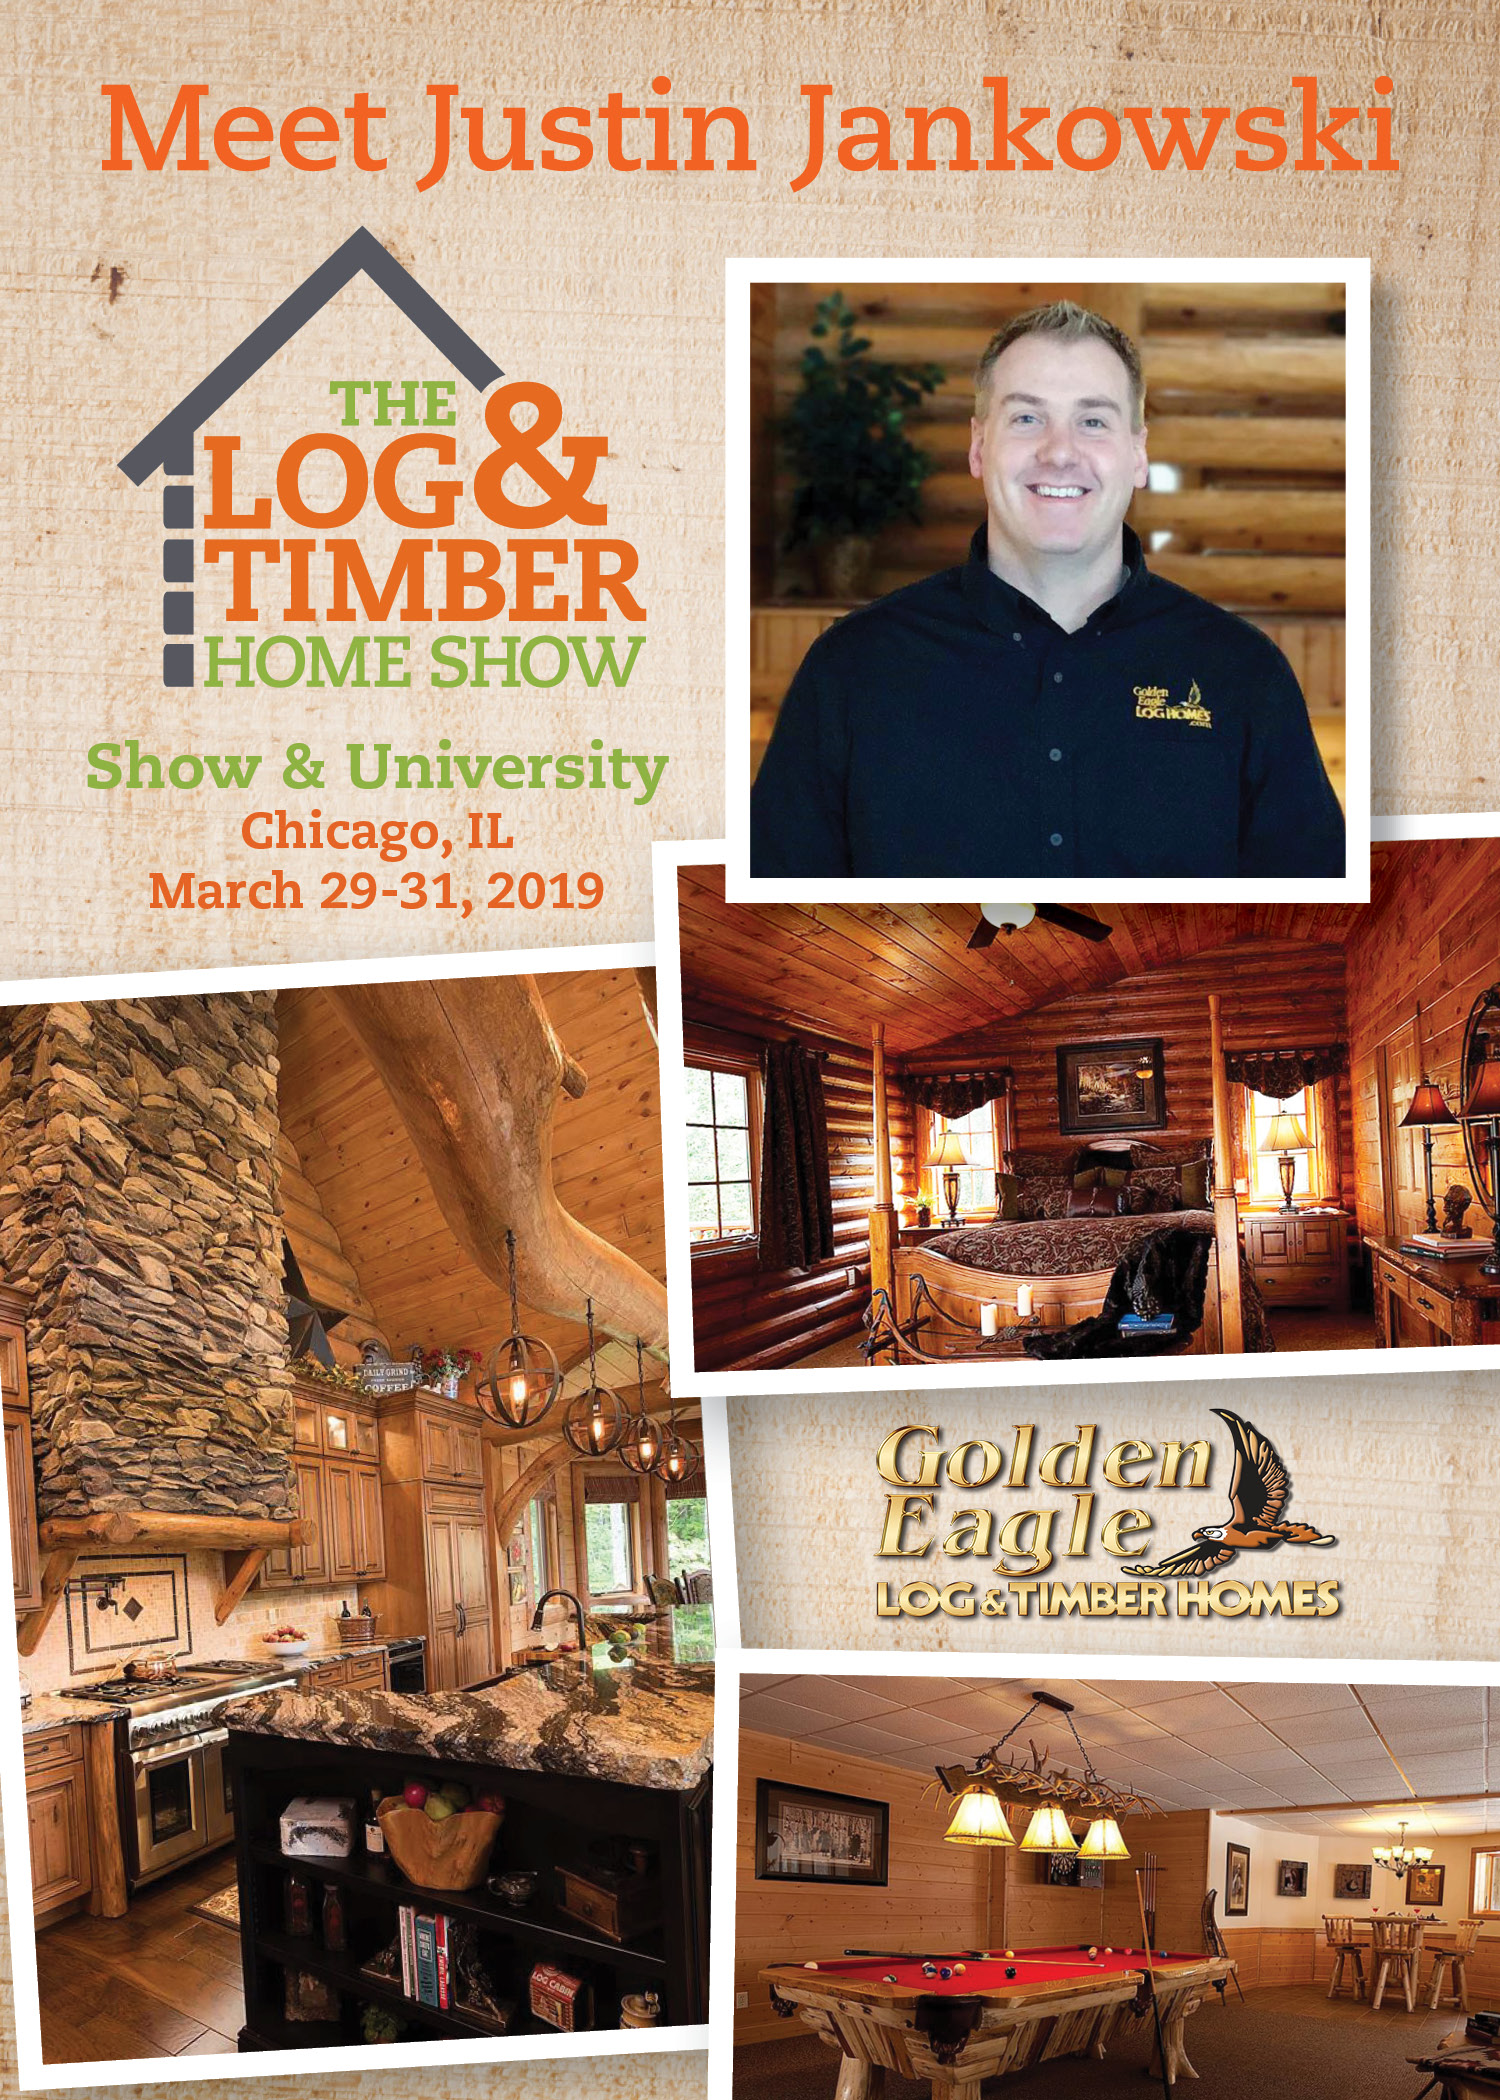 Chicago, IL | Justin Jankowski | Golden Eagle Log & Timber Homes | March 29-31, 2019 | Workshop | Log & Timber Home Show